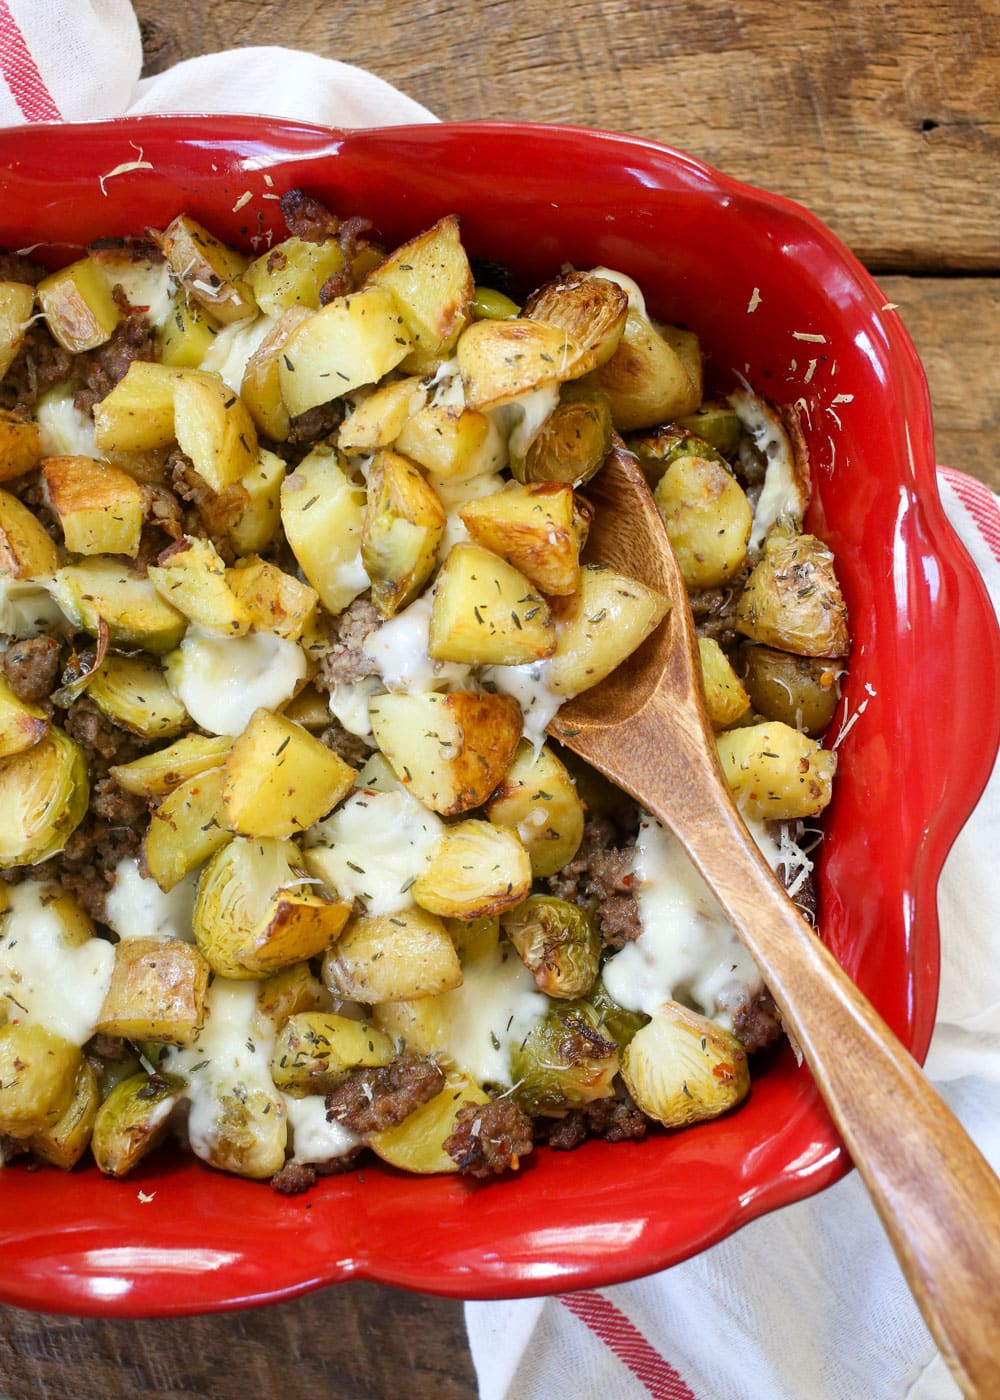 Roasted Potatoes, Brussels, and Sausage - get the recipe at barefeetinthekitchen.com